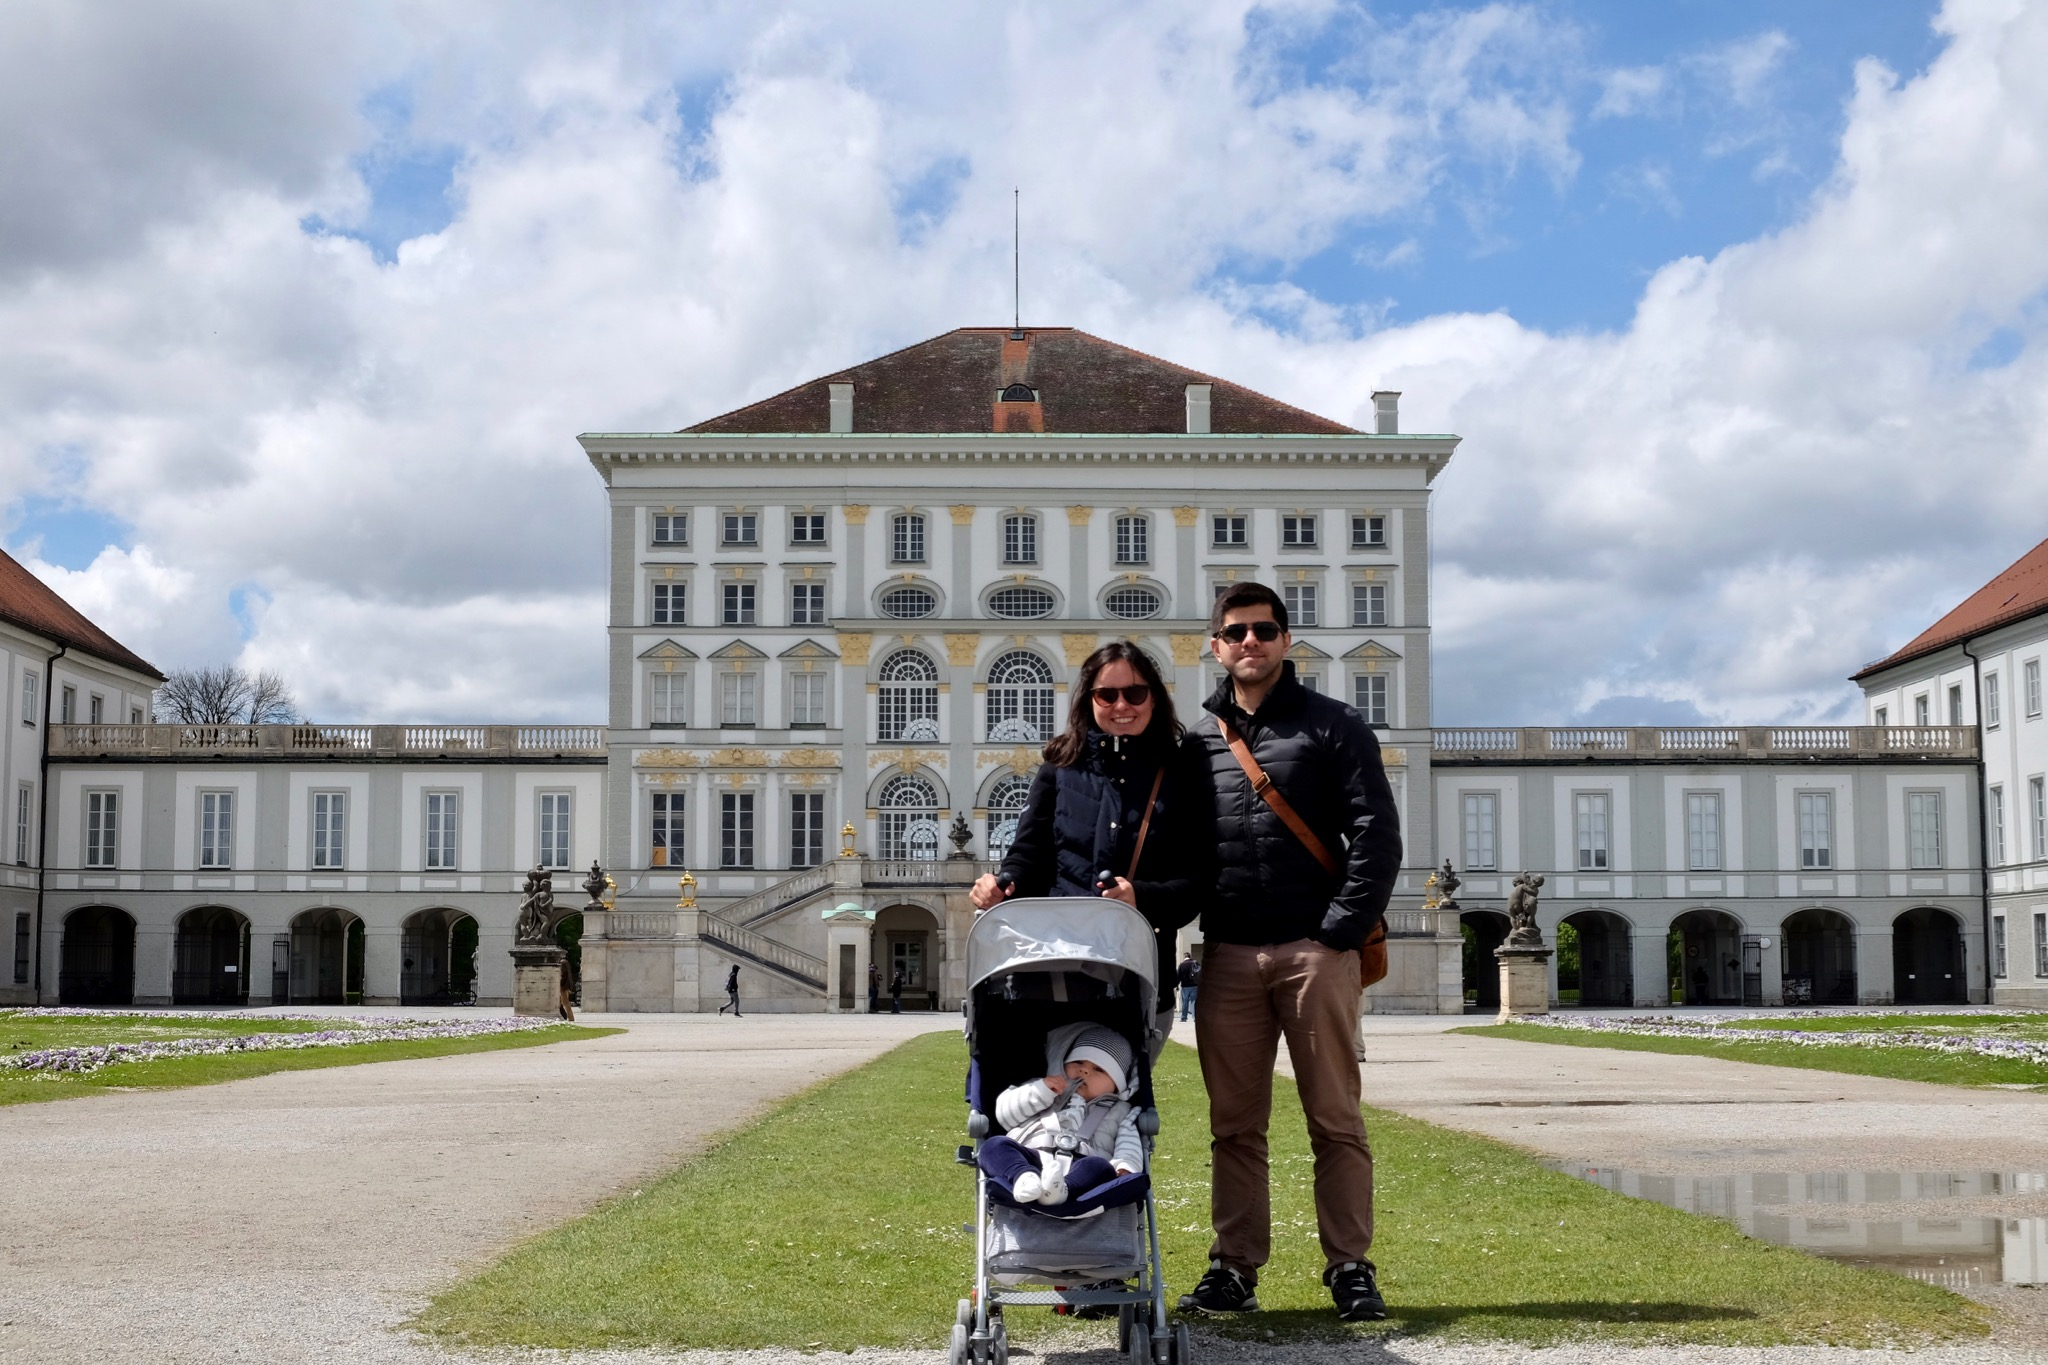 Zeynep, Alper and me at Nymphenburg Palace - Munich, Germany